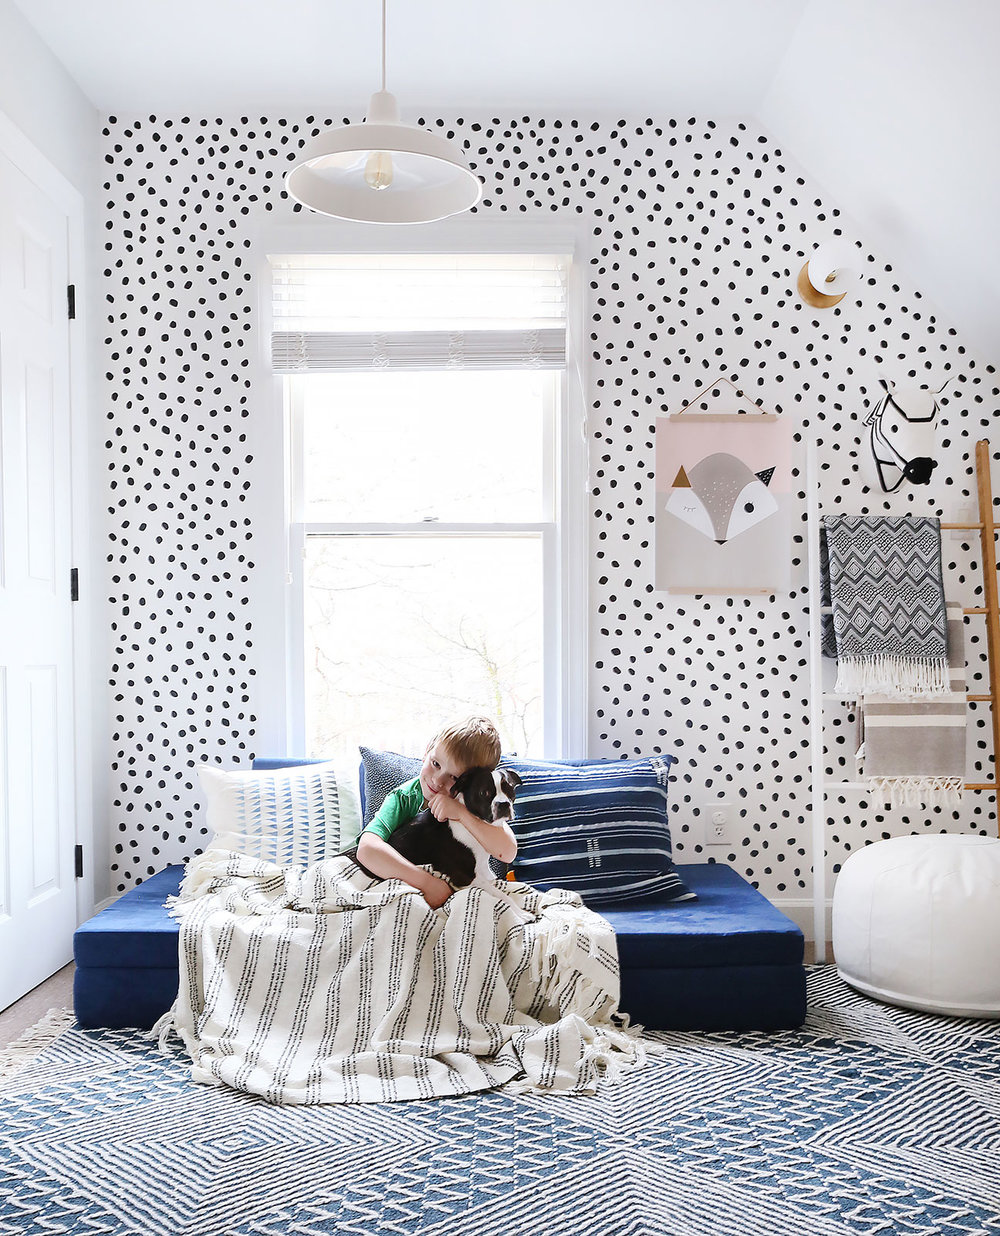 rug   /   geometric pillow   /   wall decals   /   white pendant light (similar)   /   blanket ladder   /   white pouf